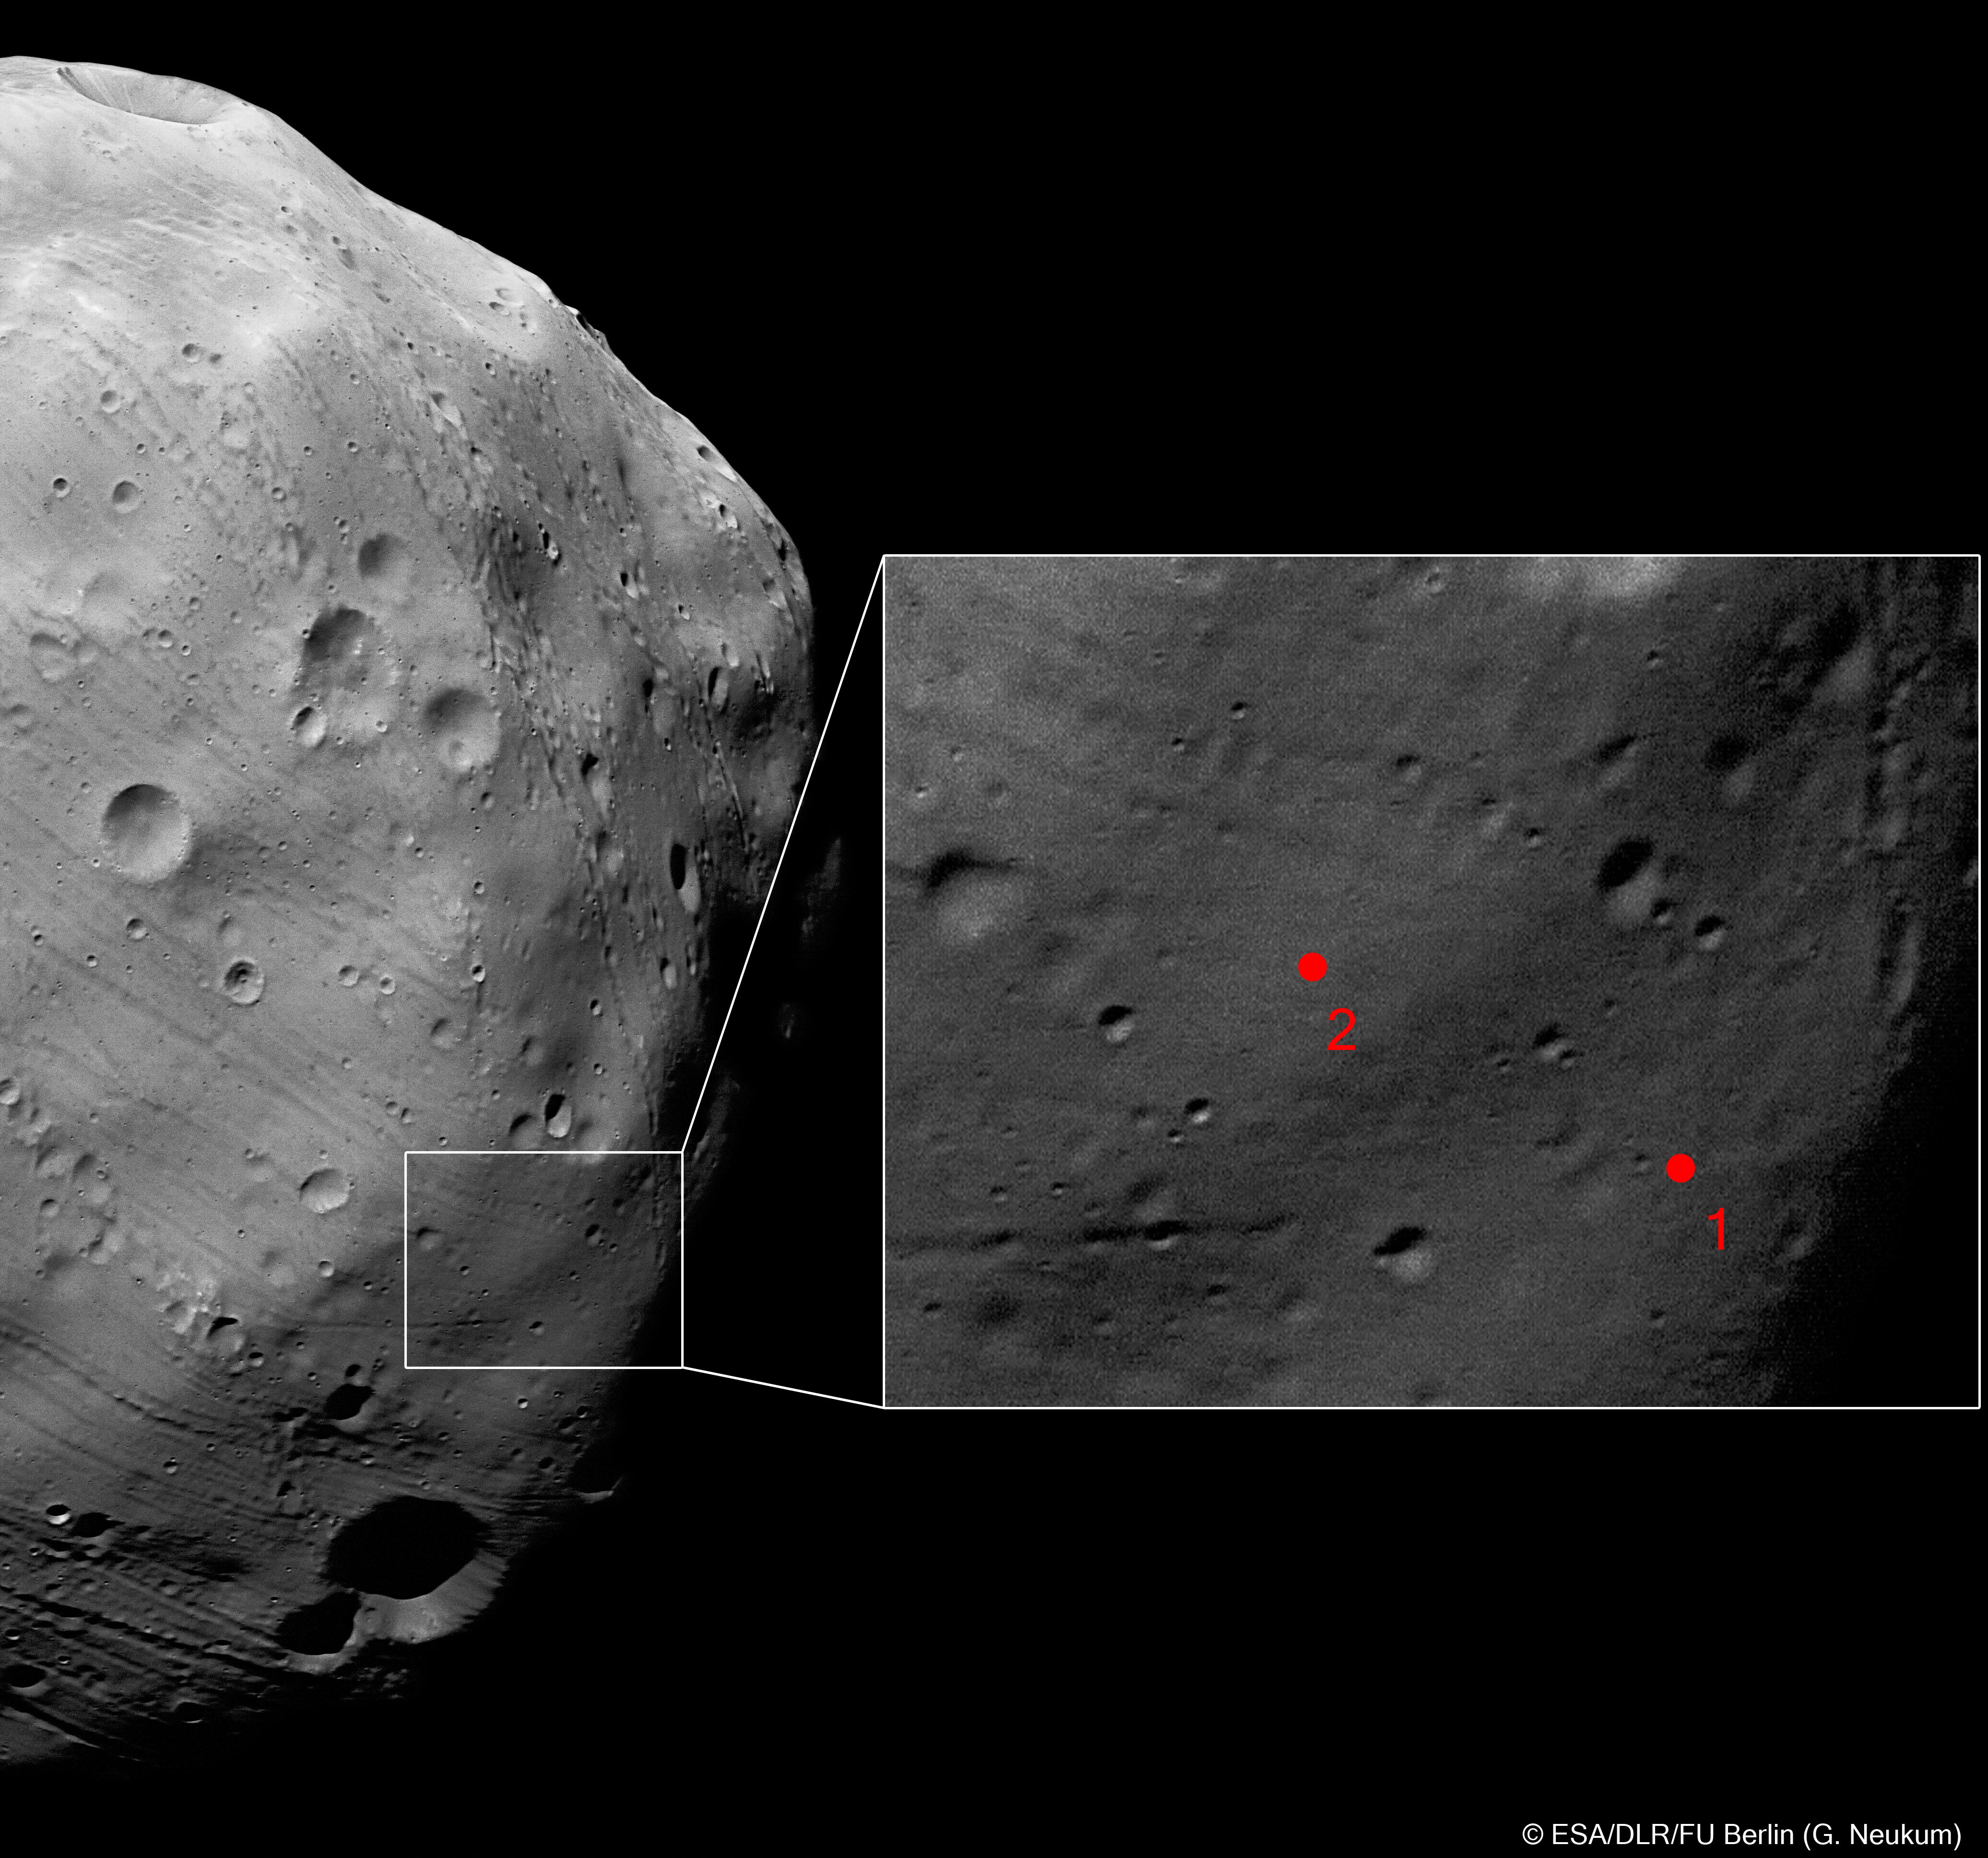 Phobos-Grunt_landing_site_imaged_on_7_March_2010